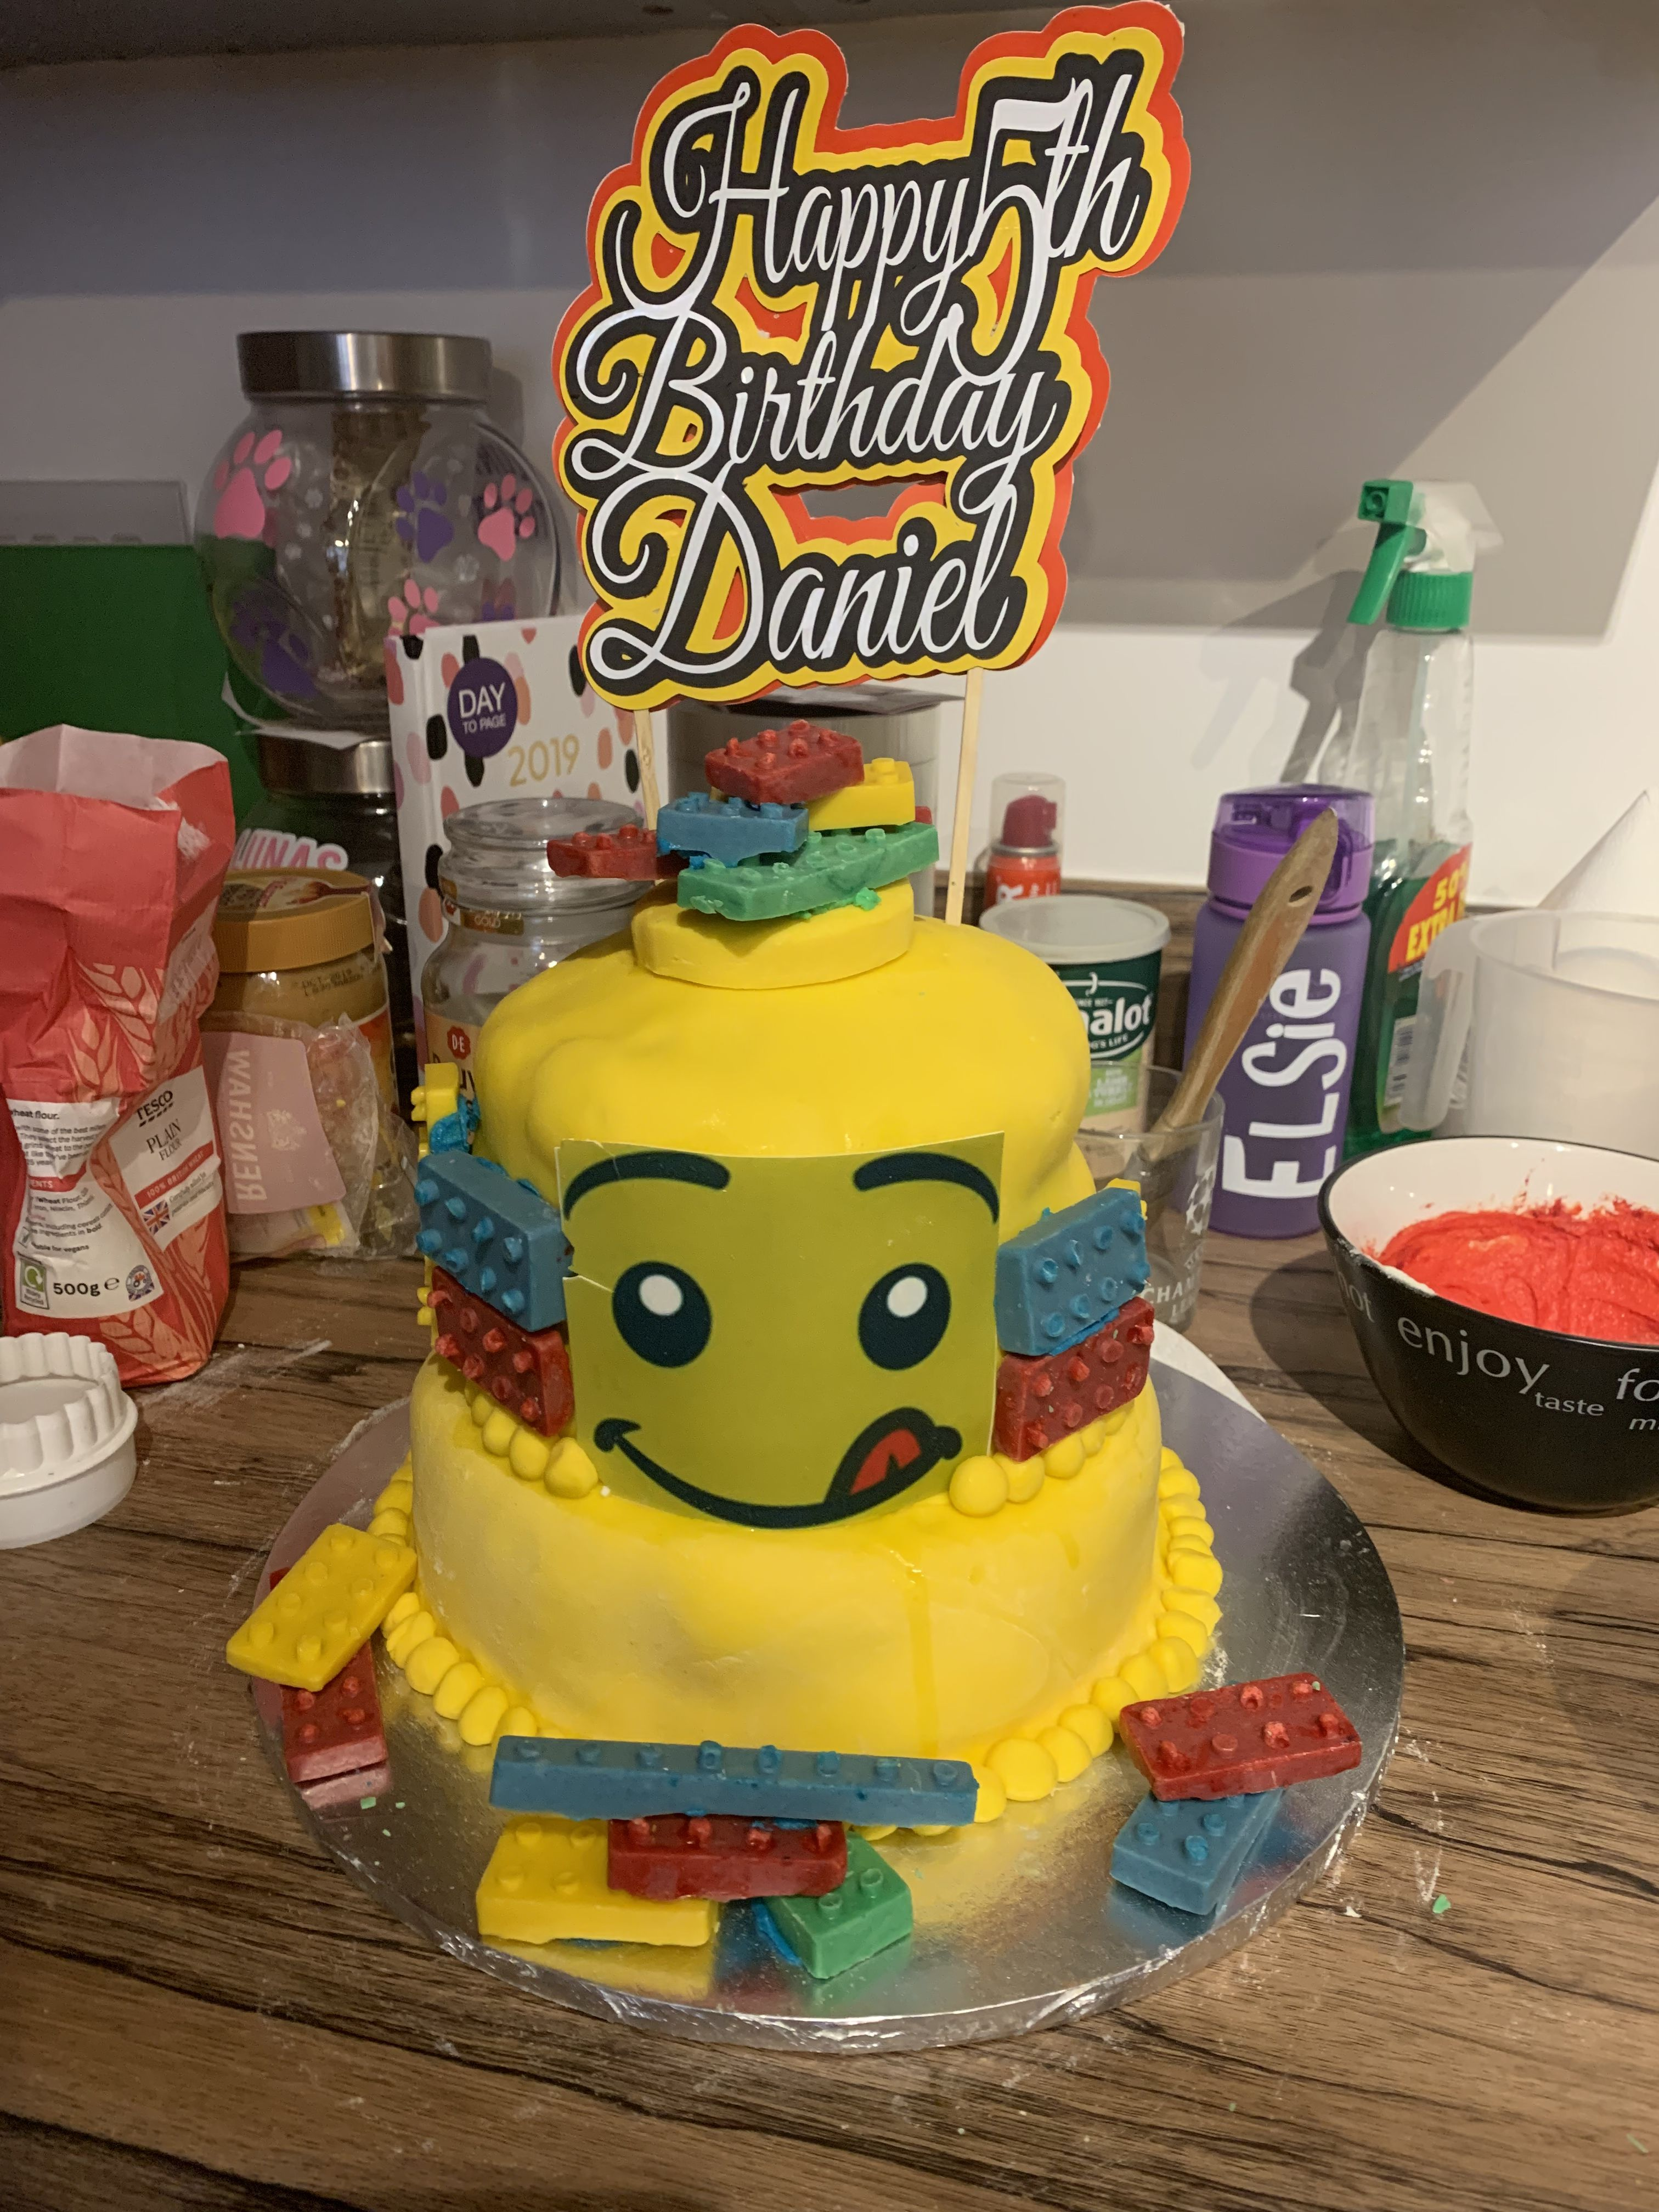 Nicer pic of cake - excuse the background | Cake, Birthday party themes, Birthday  cake